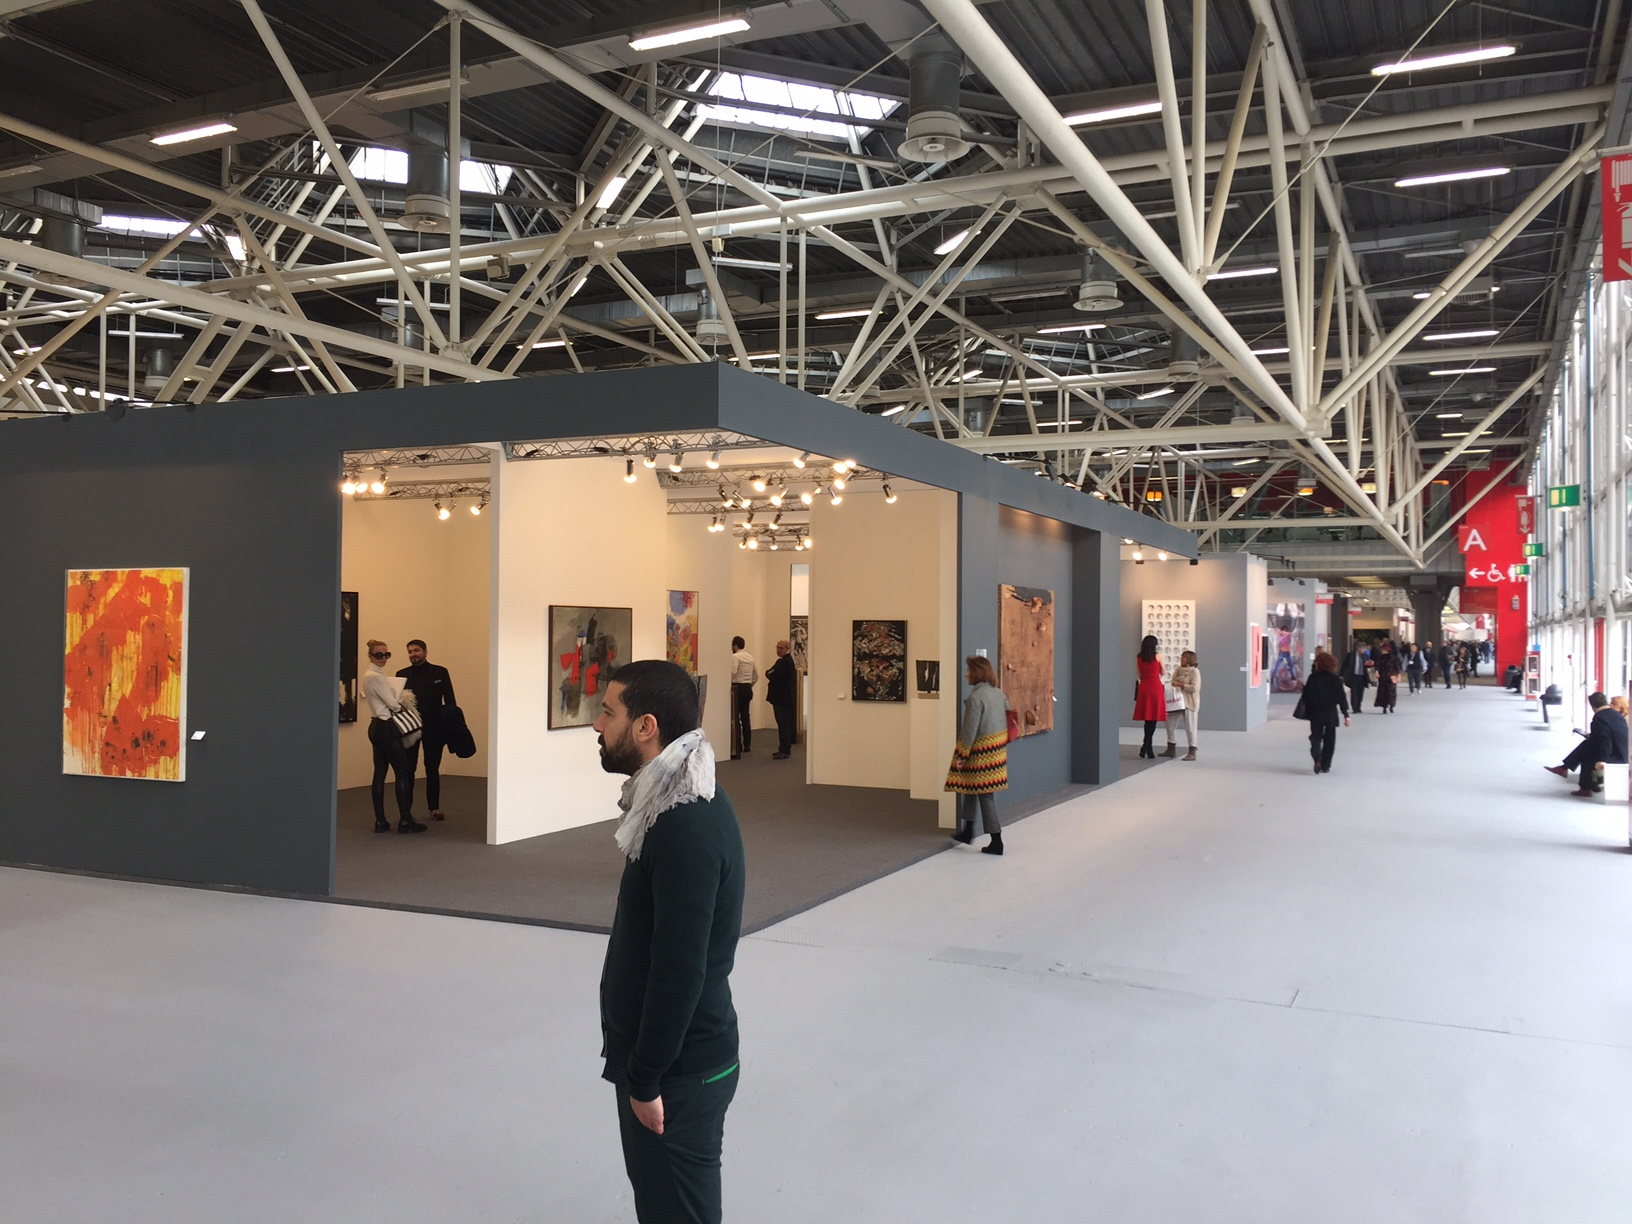 Arte fiera 2016 bologna 8 artribune for Fiera di bergamo 2016